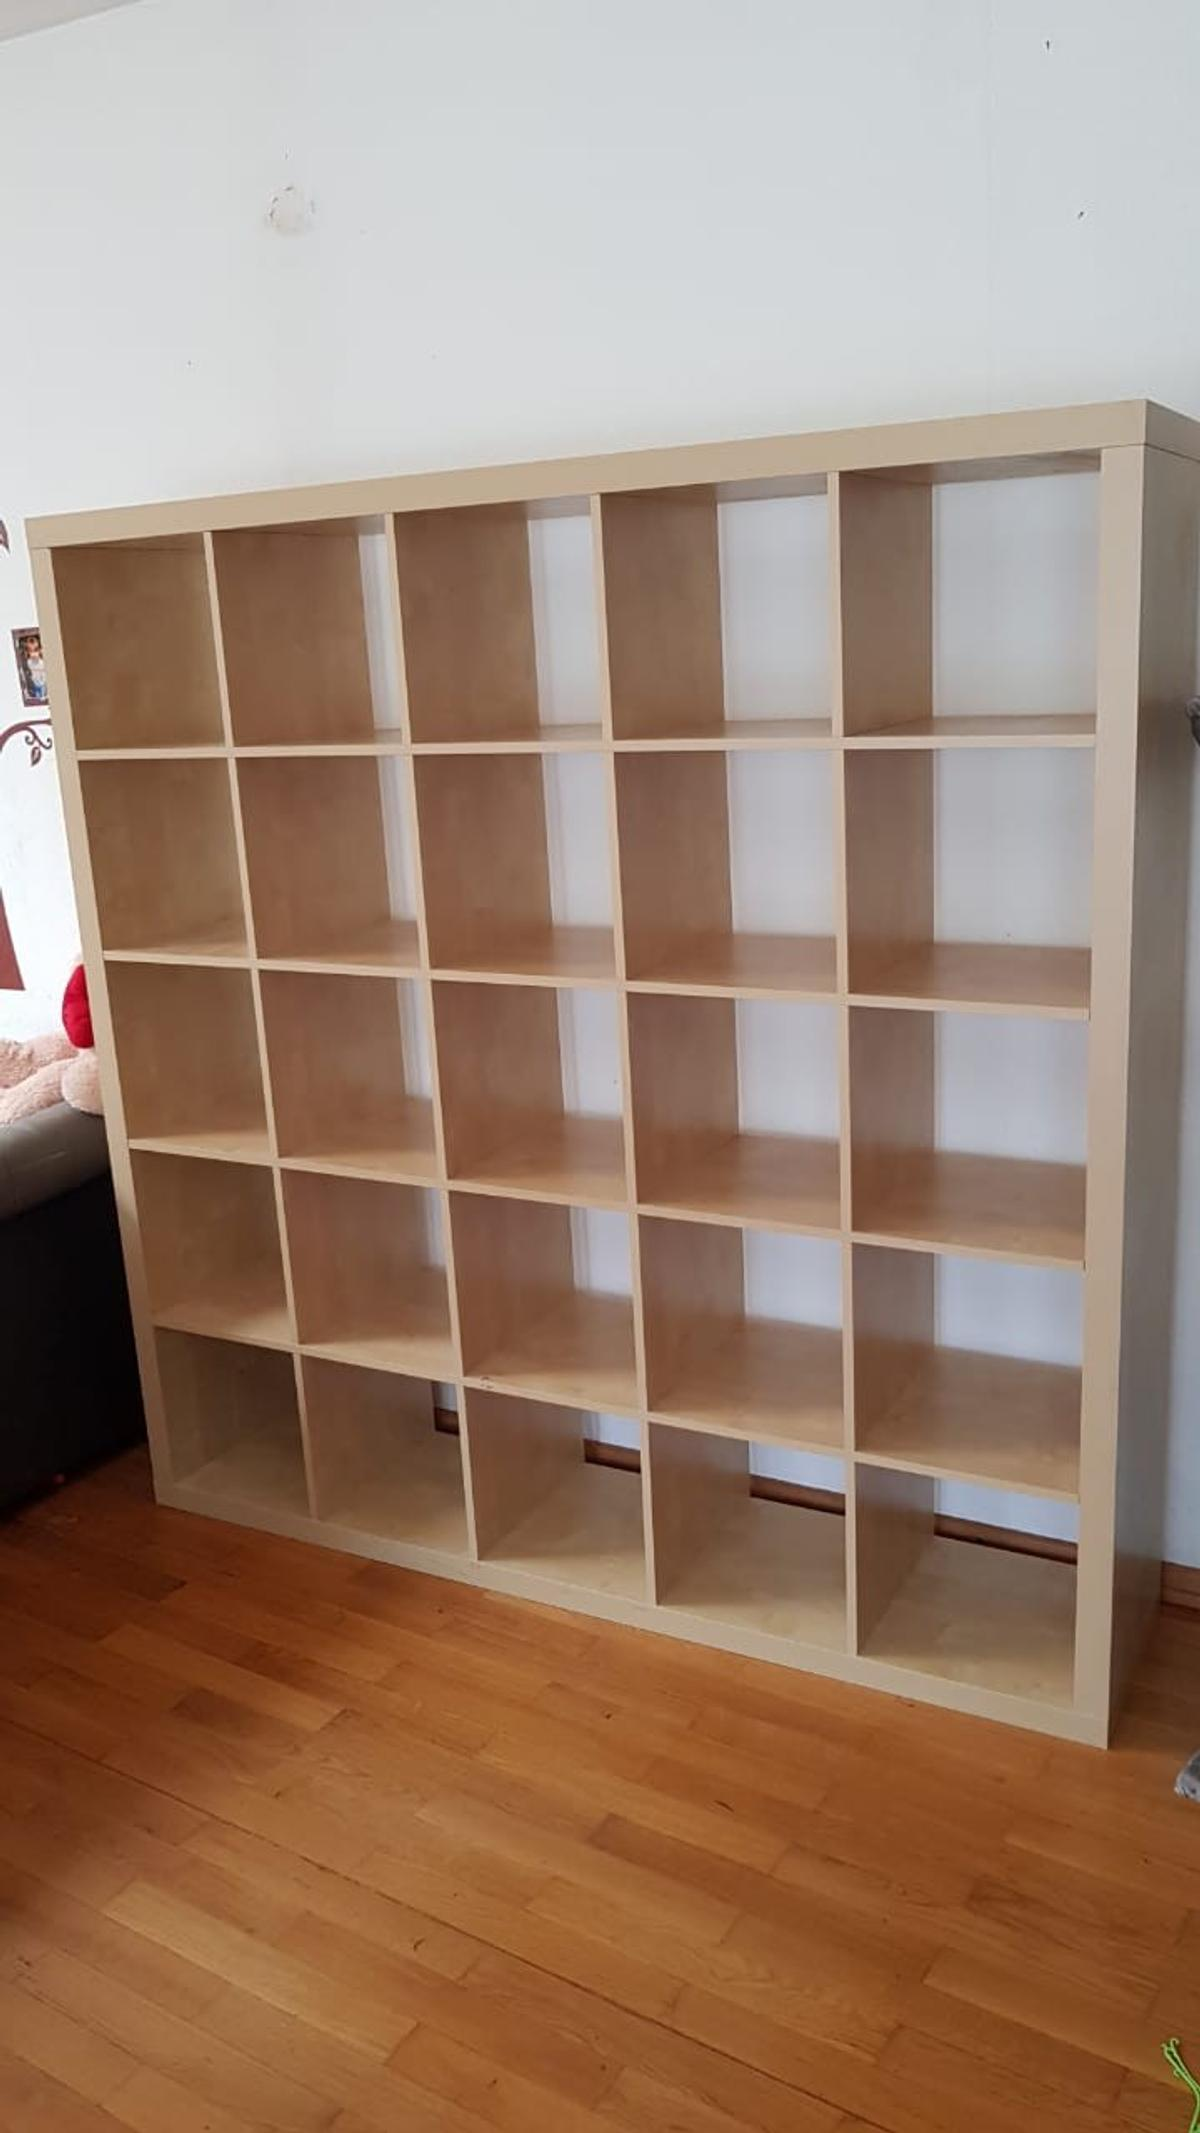 Regal Birke Expedit Ballack Regal 5x5 Birke Ikea In 68623 Lampertheim For €80.00 For Sale | Shpock